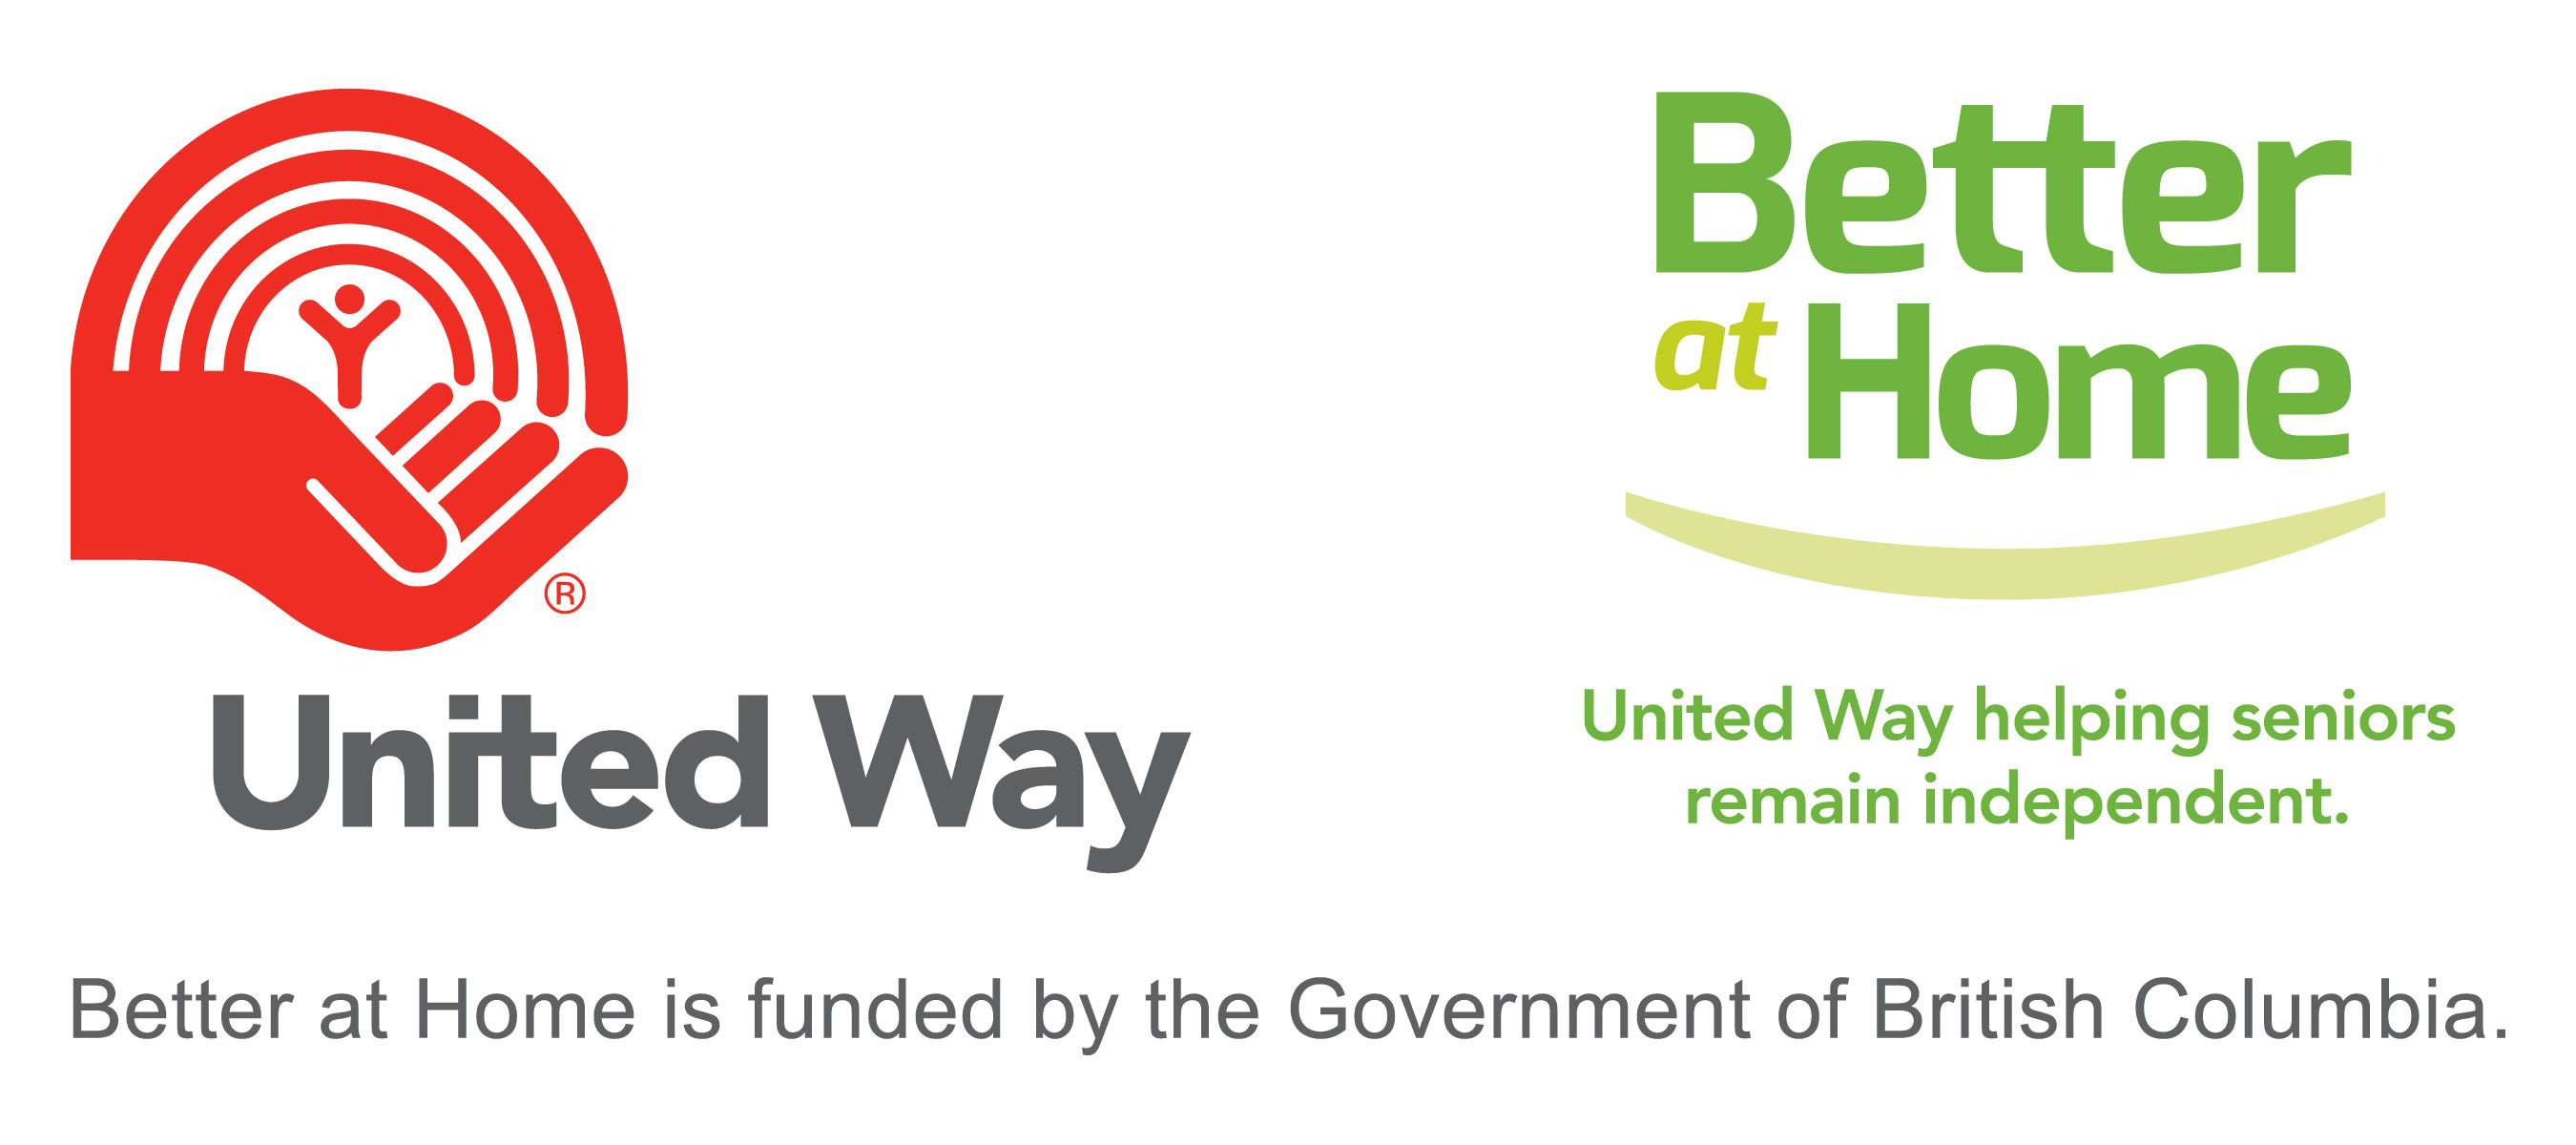 betterathomecombinedlogo govtrevised